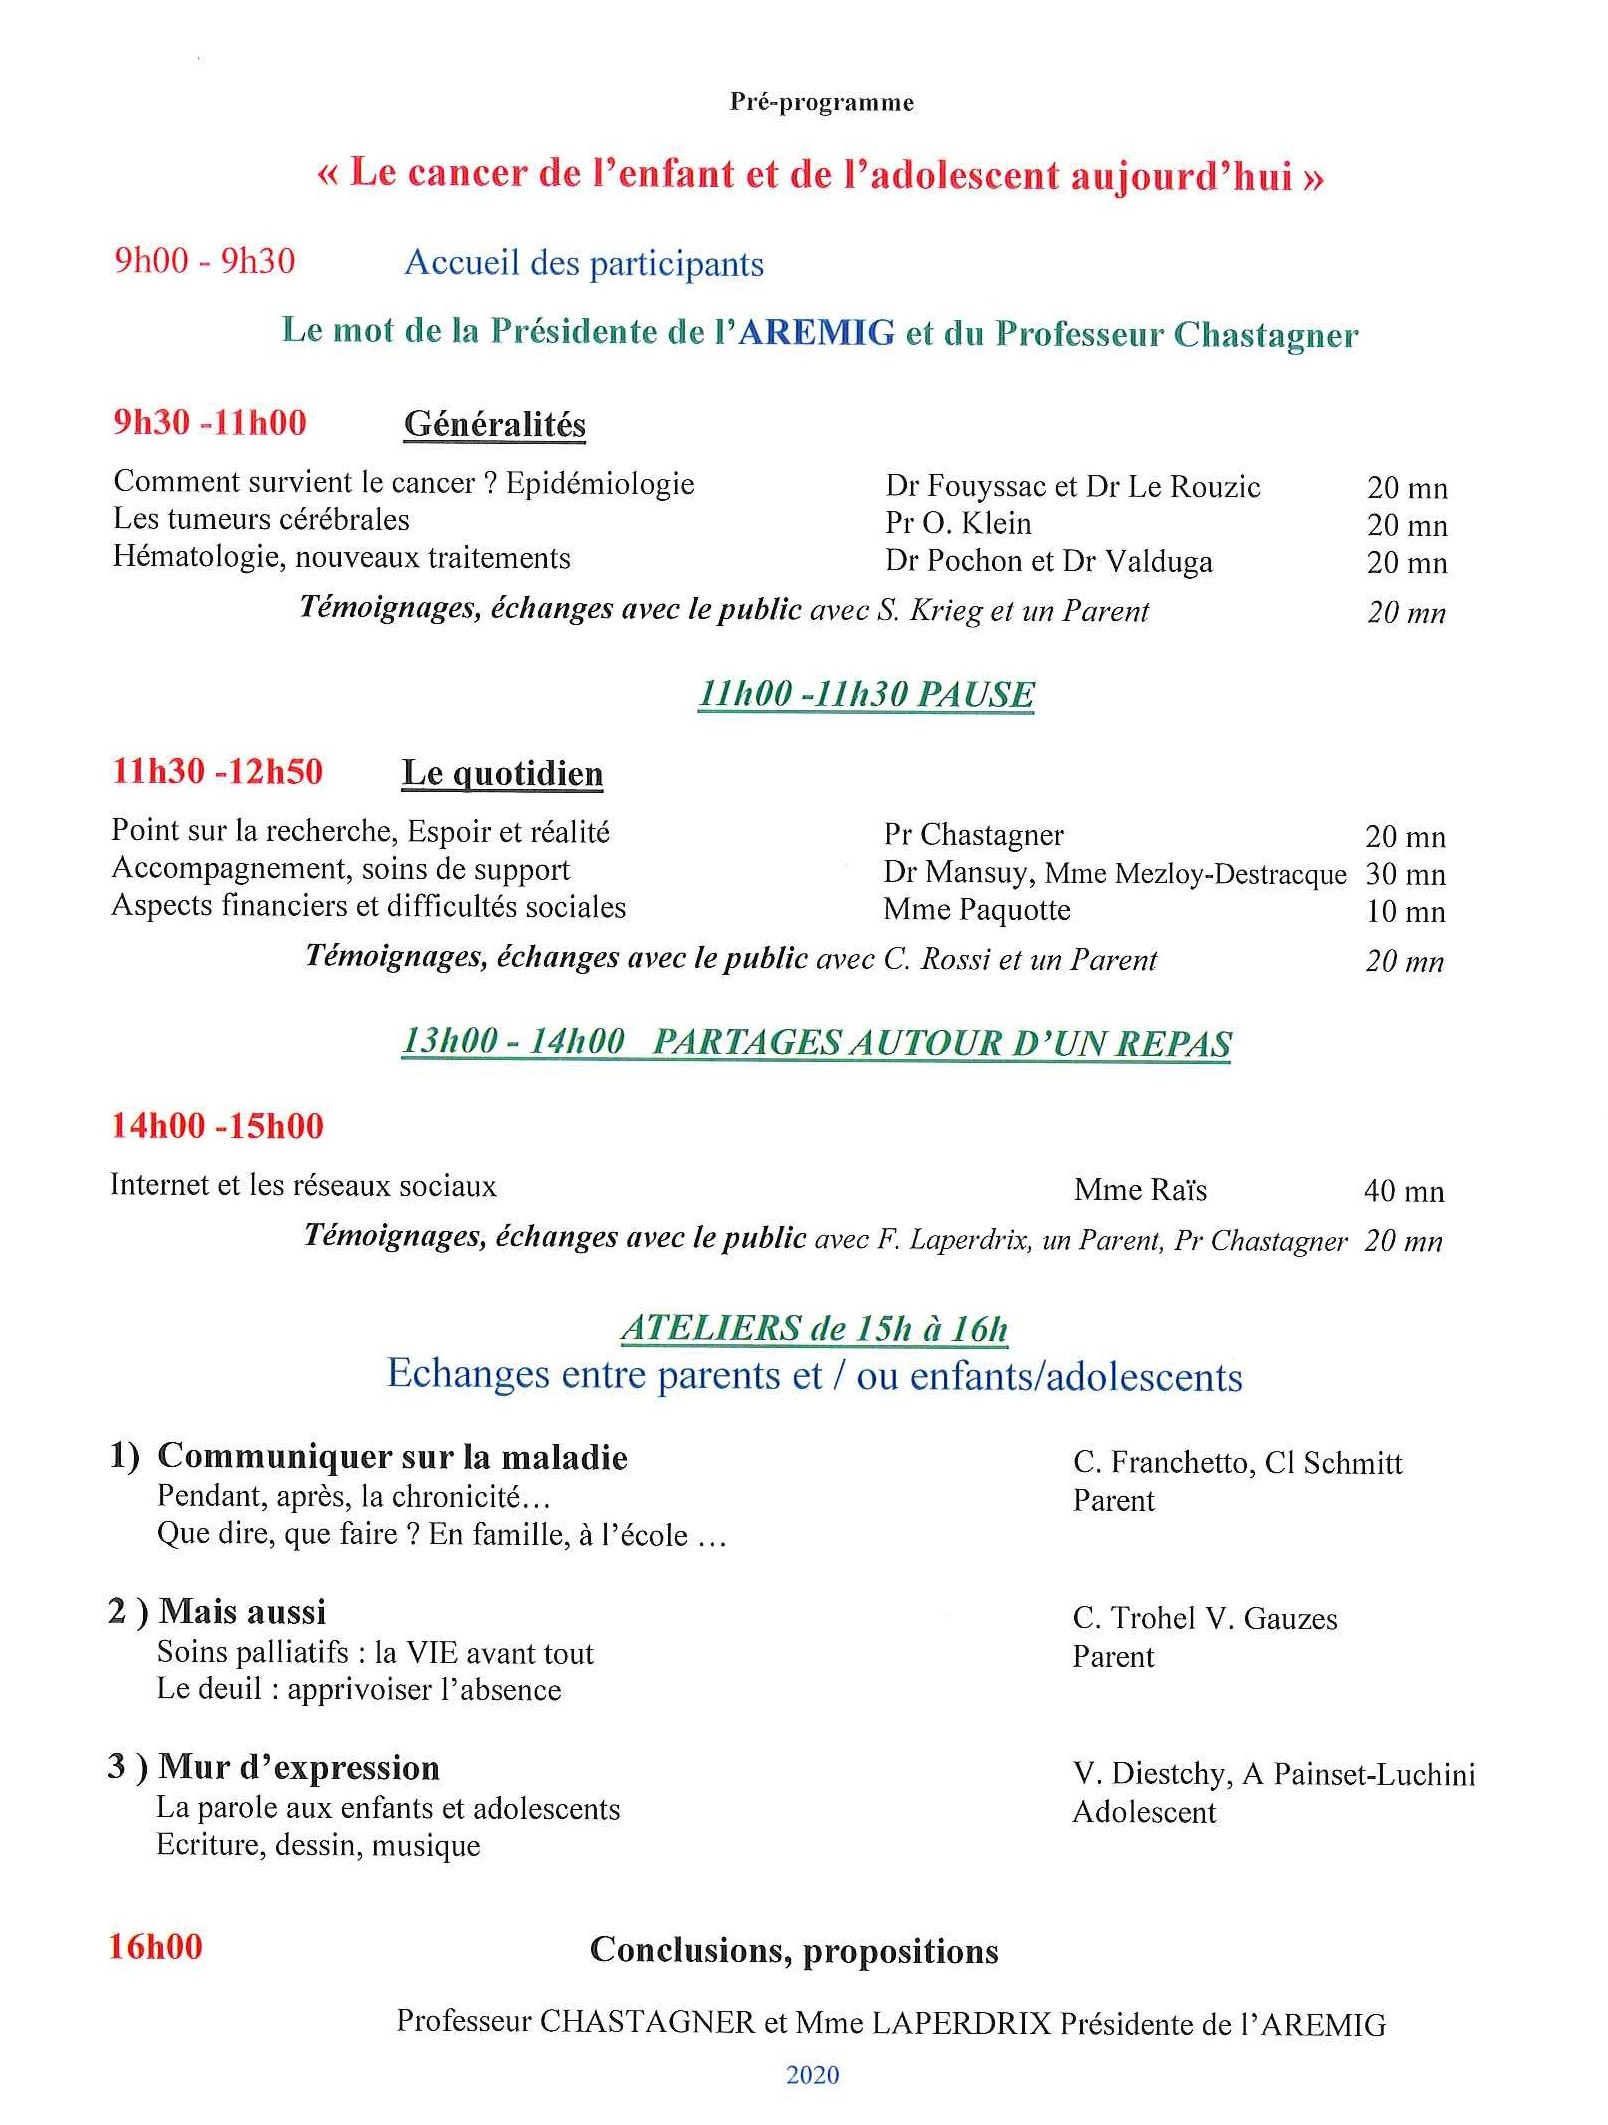 programme colloque 2020